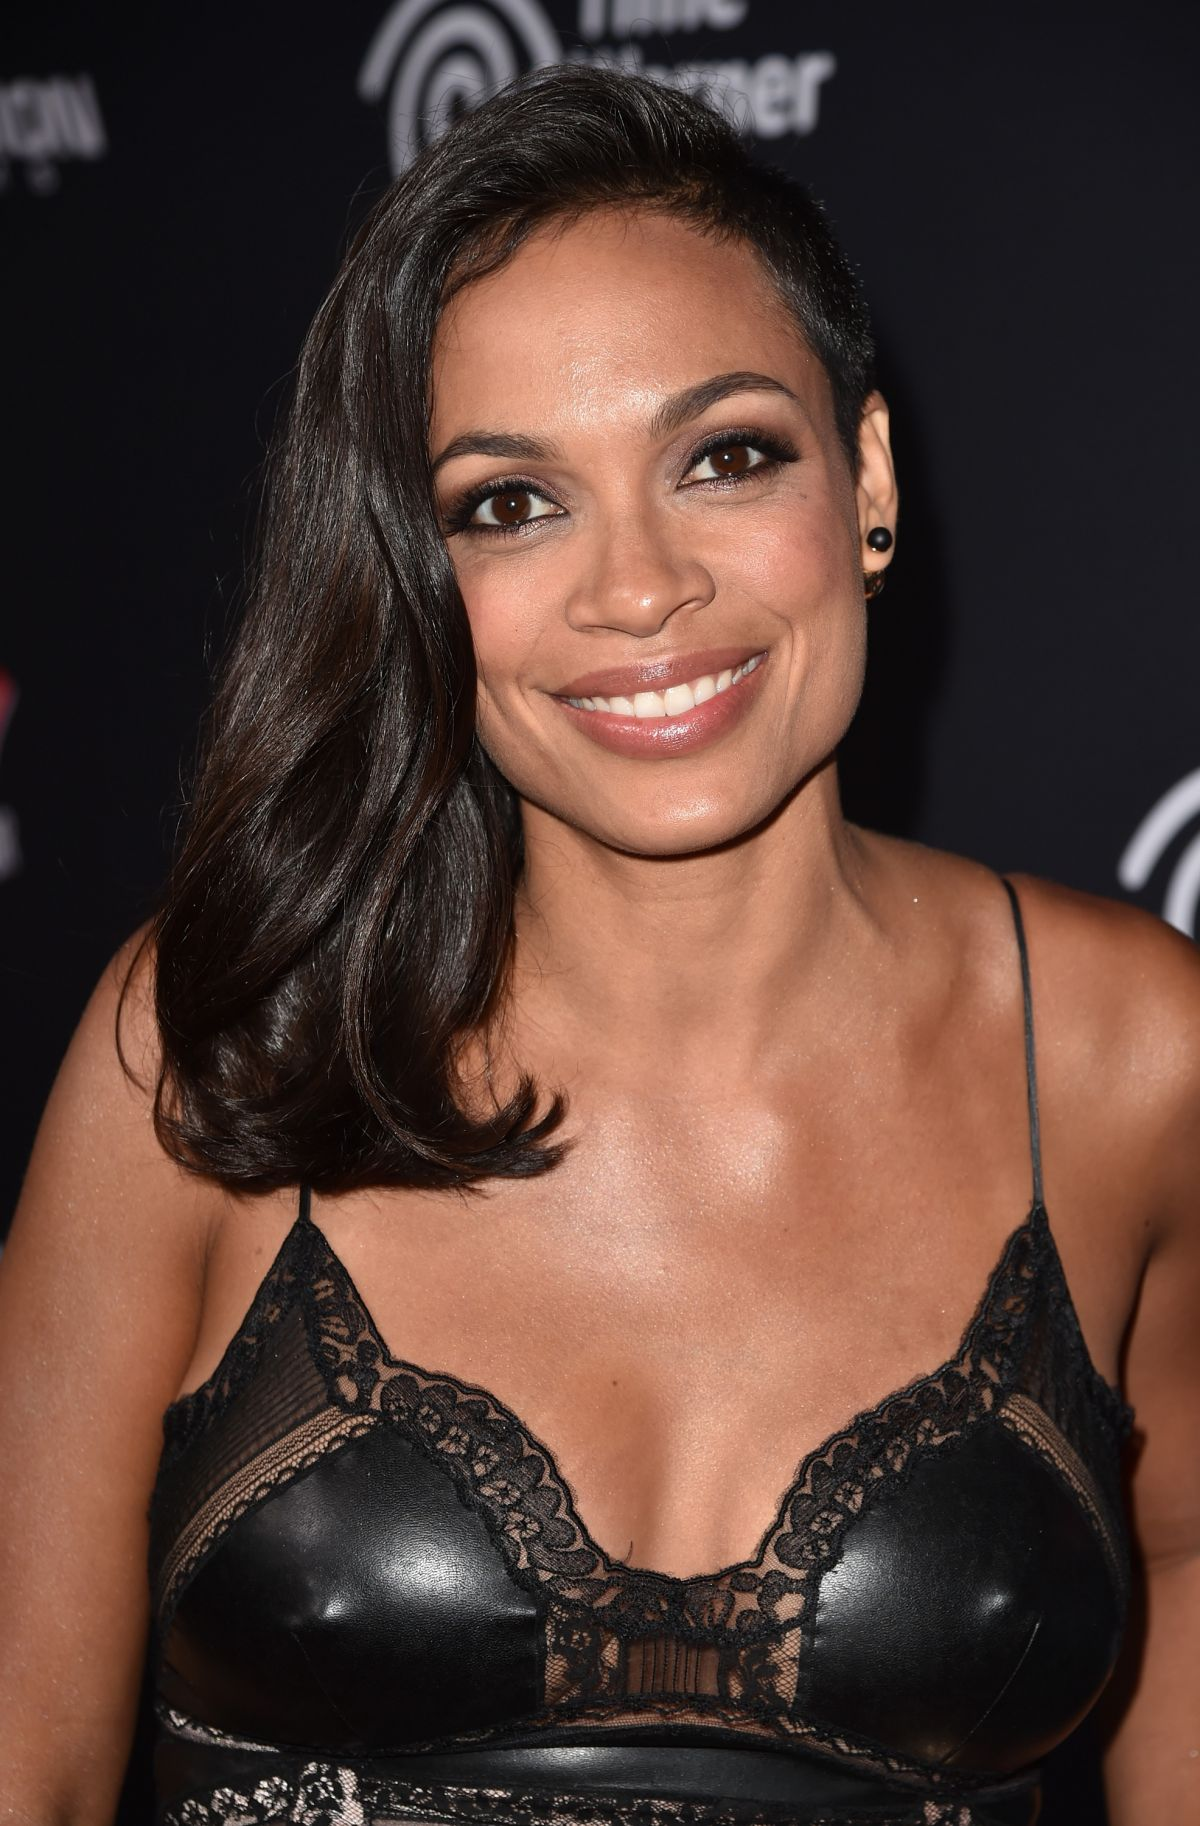 ROSARIO DAWSON at Sin City: A Dame To Kill For Premiere in Los Angeles ...